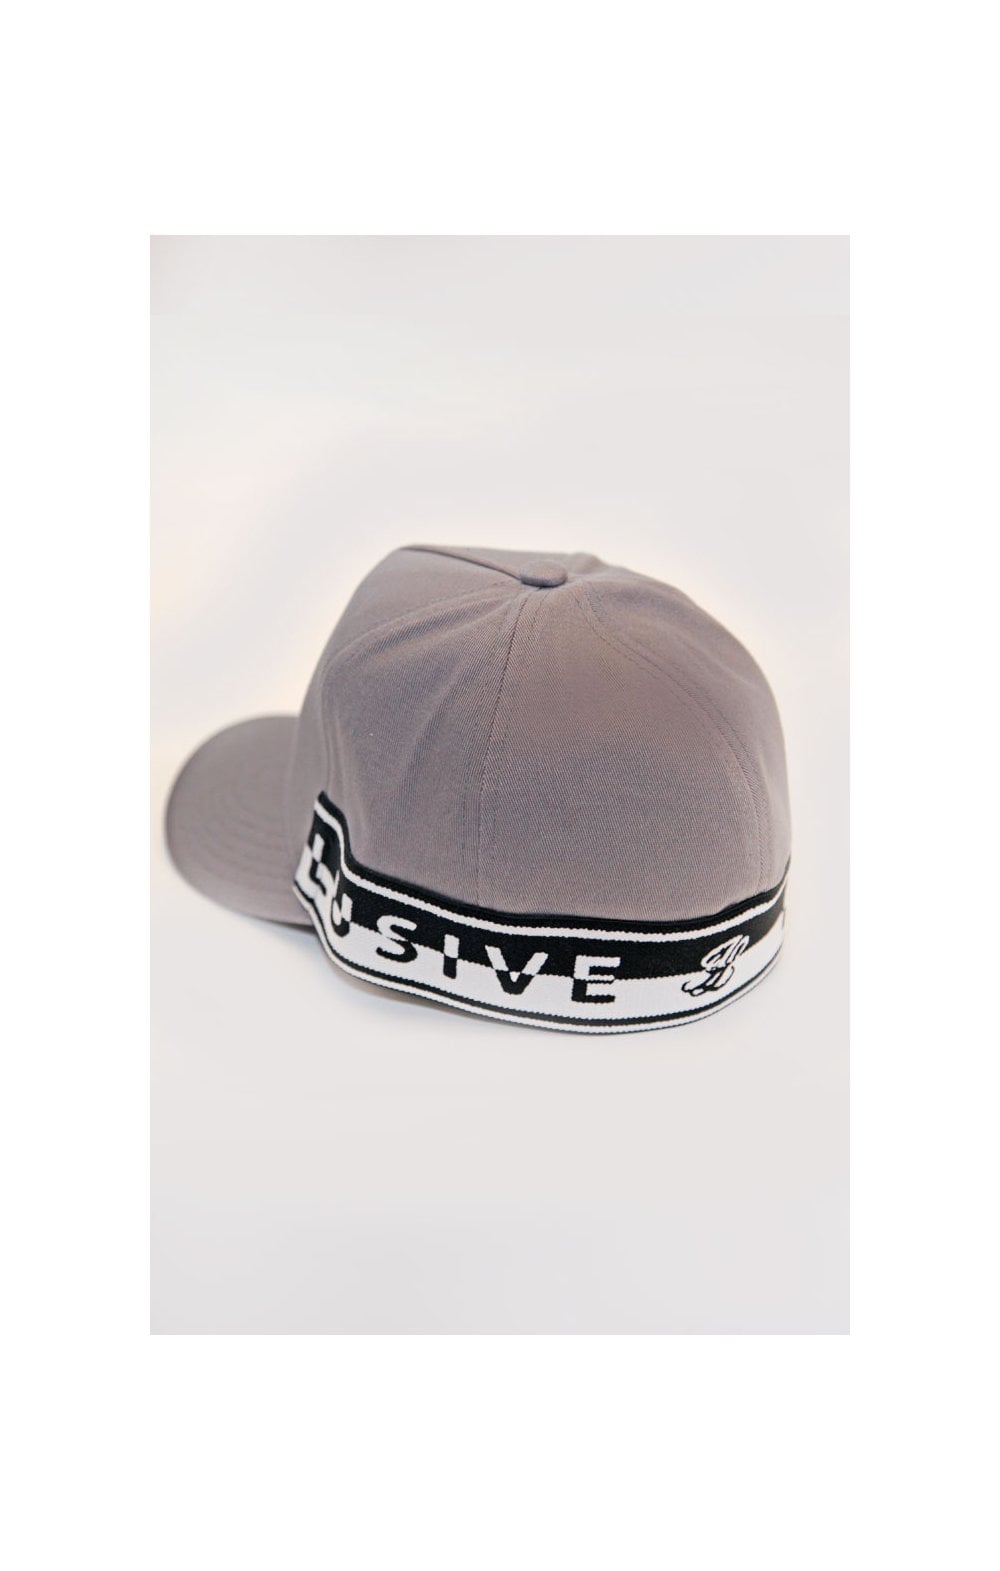 Load image into Gallery viewer, Illusive London Taped Trucker - Grey & Black (1)